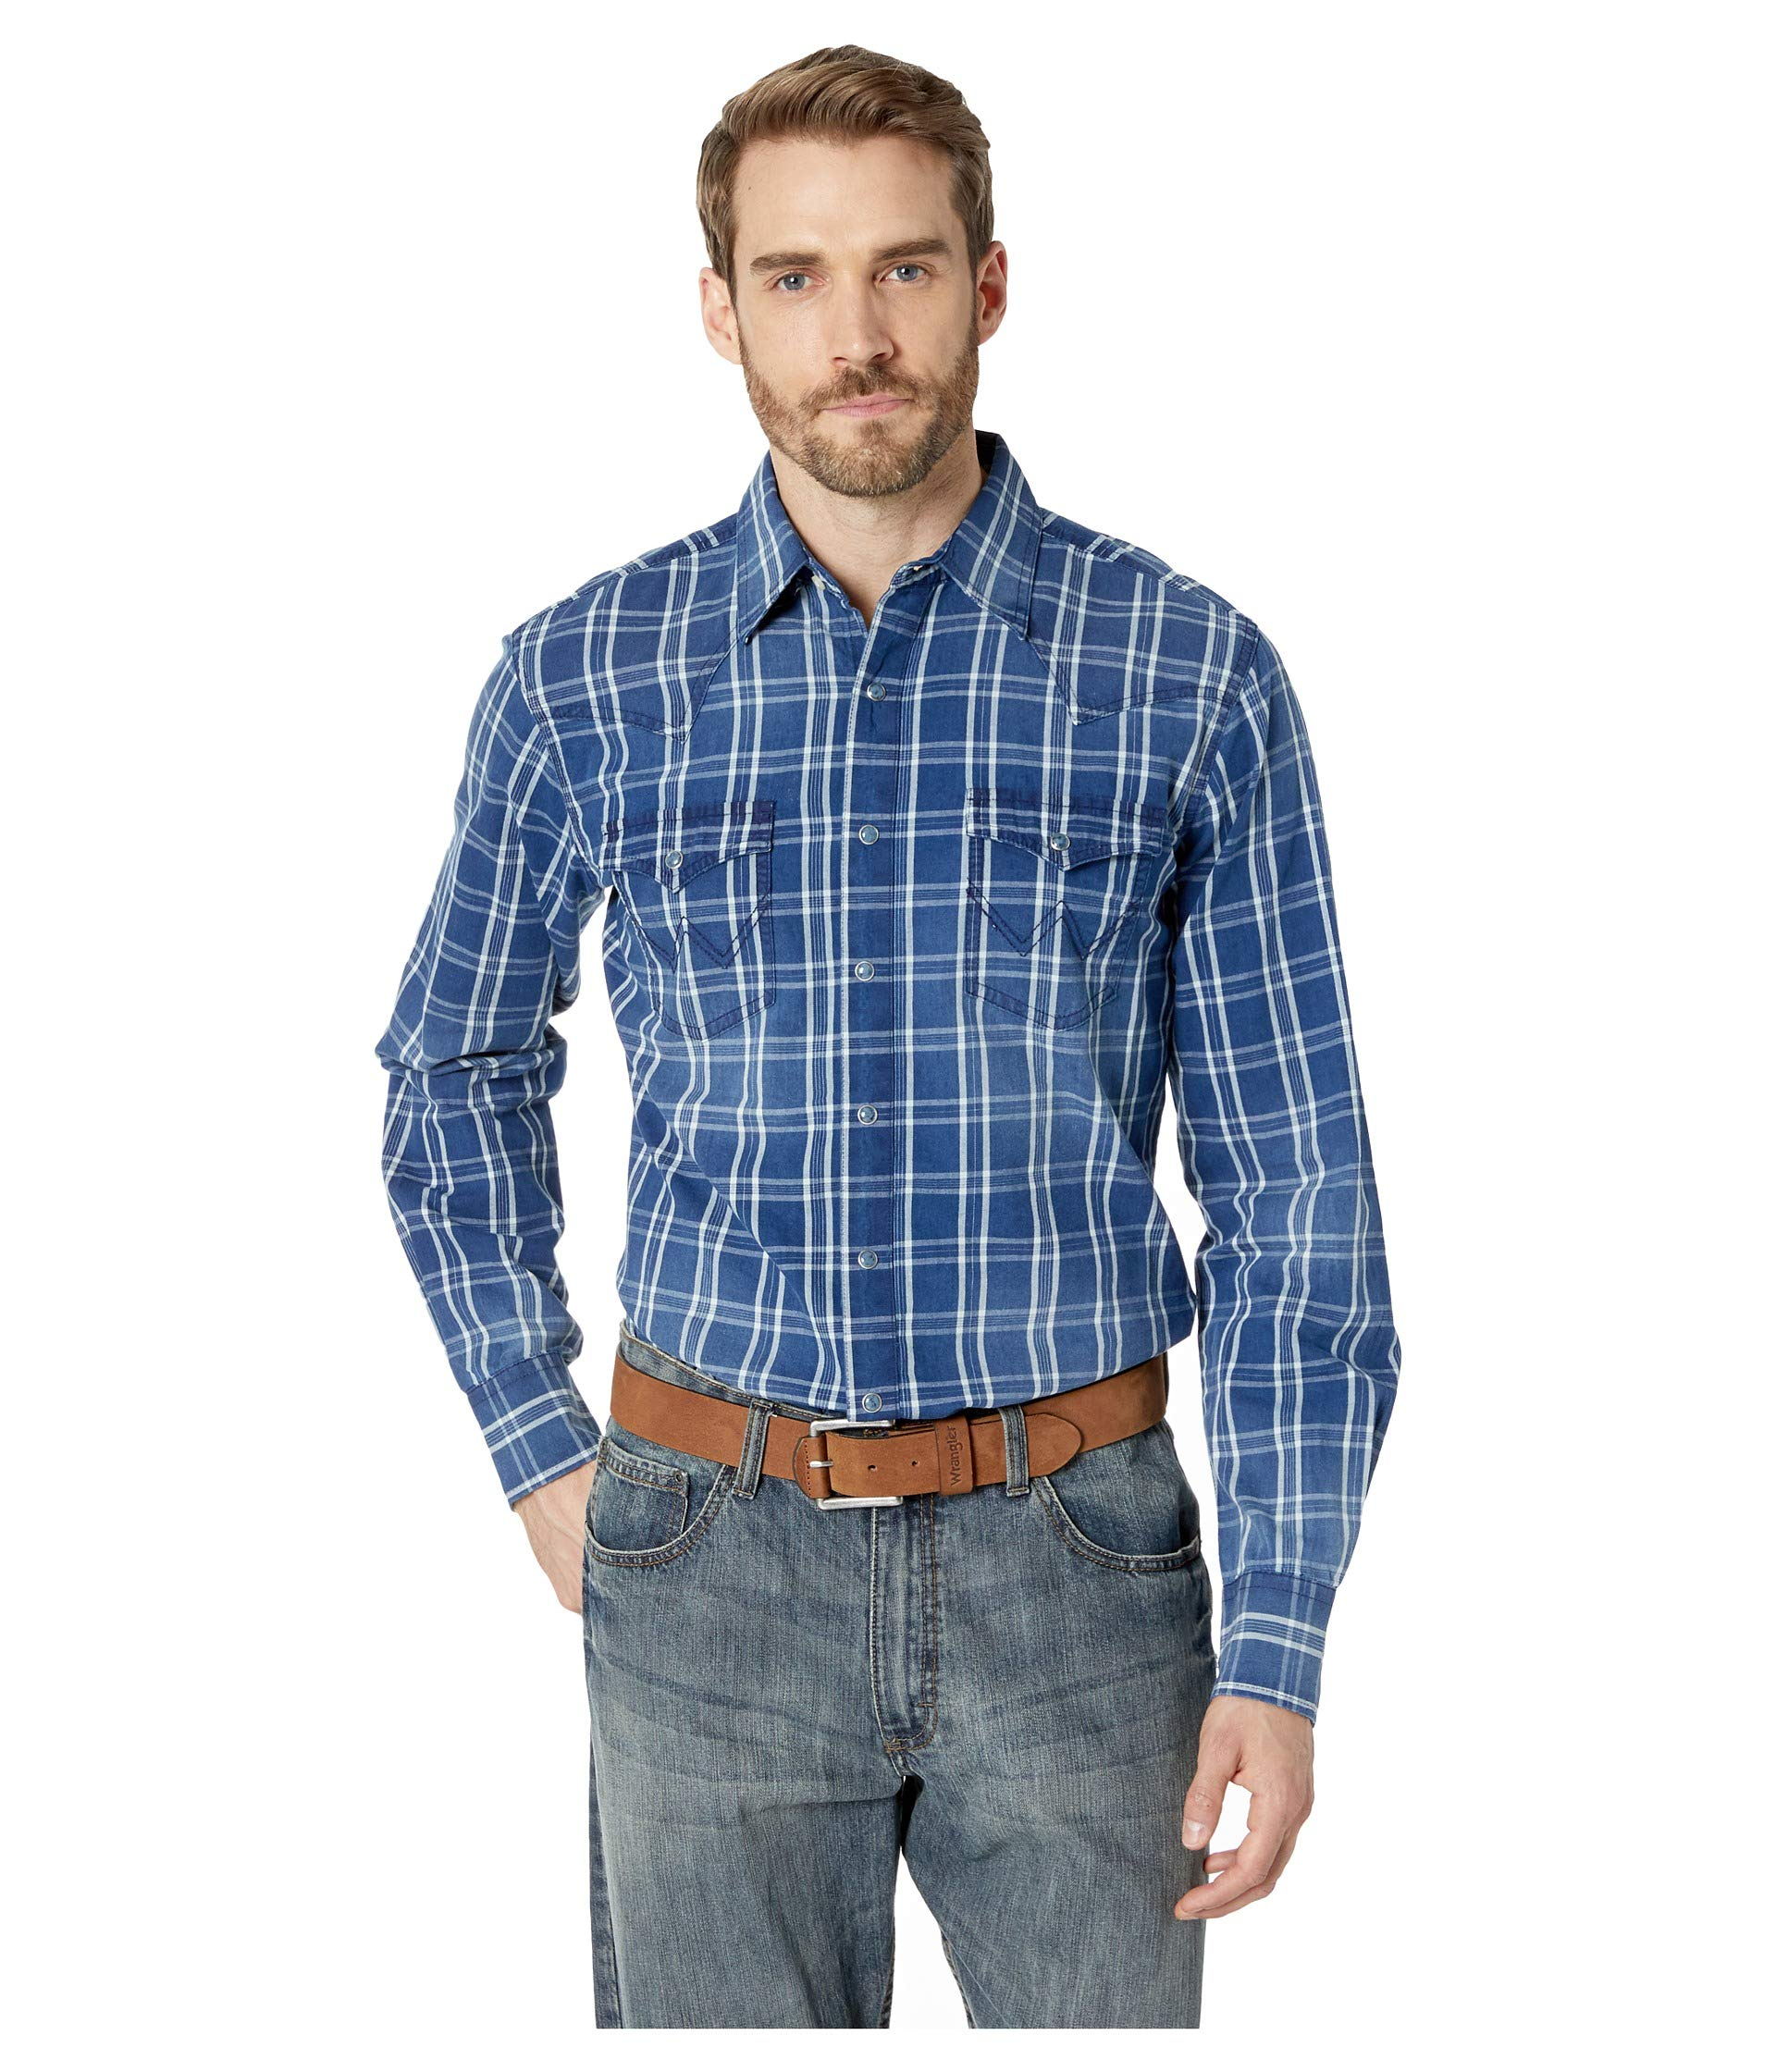 1940s Style Mens Shirts, Sweaters, Vests Wrangler Retro Long Sleeve Snap Plaid Indigo Plaid Mens Clothing $51.00 AT vintagedancer.com